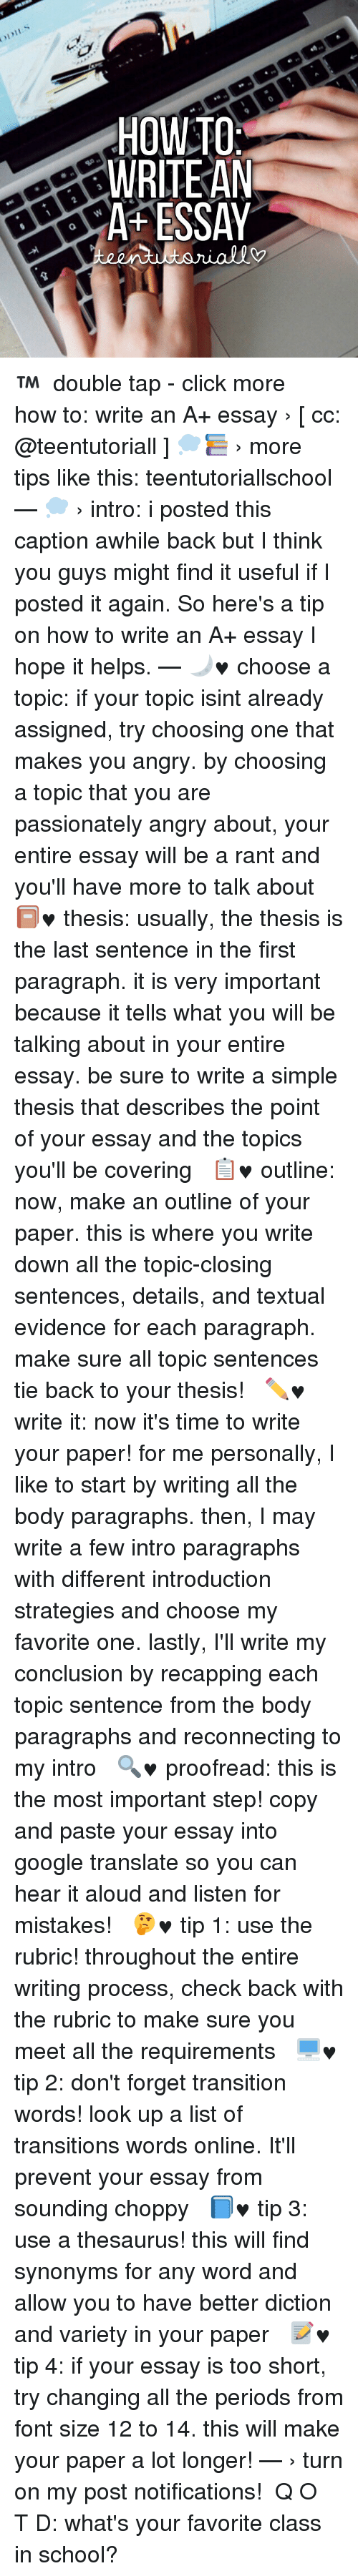 How To Make A Thesis Statement For An Essay  Essay Mahatma Gandhi English also Example English Essay   Best Memes About Rubric  Rubric Memes Compare And Contrast Essay High School And College